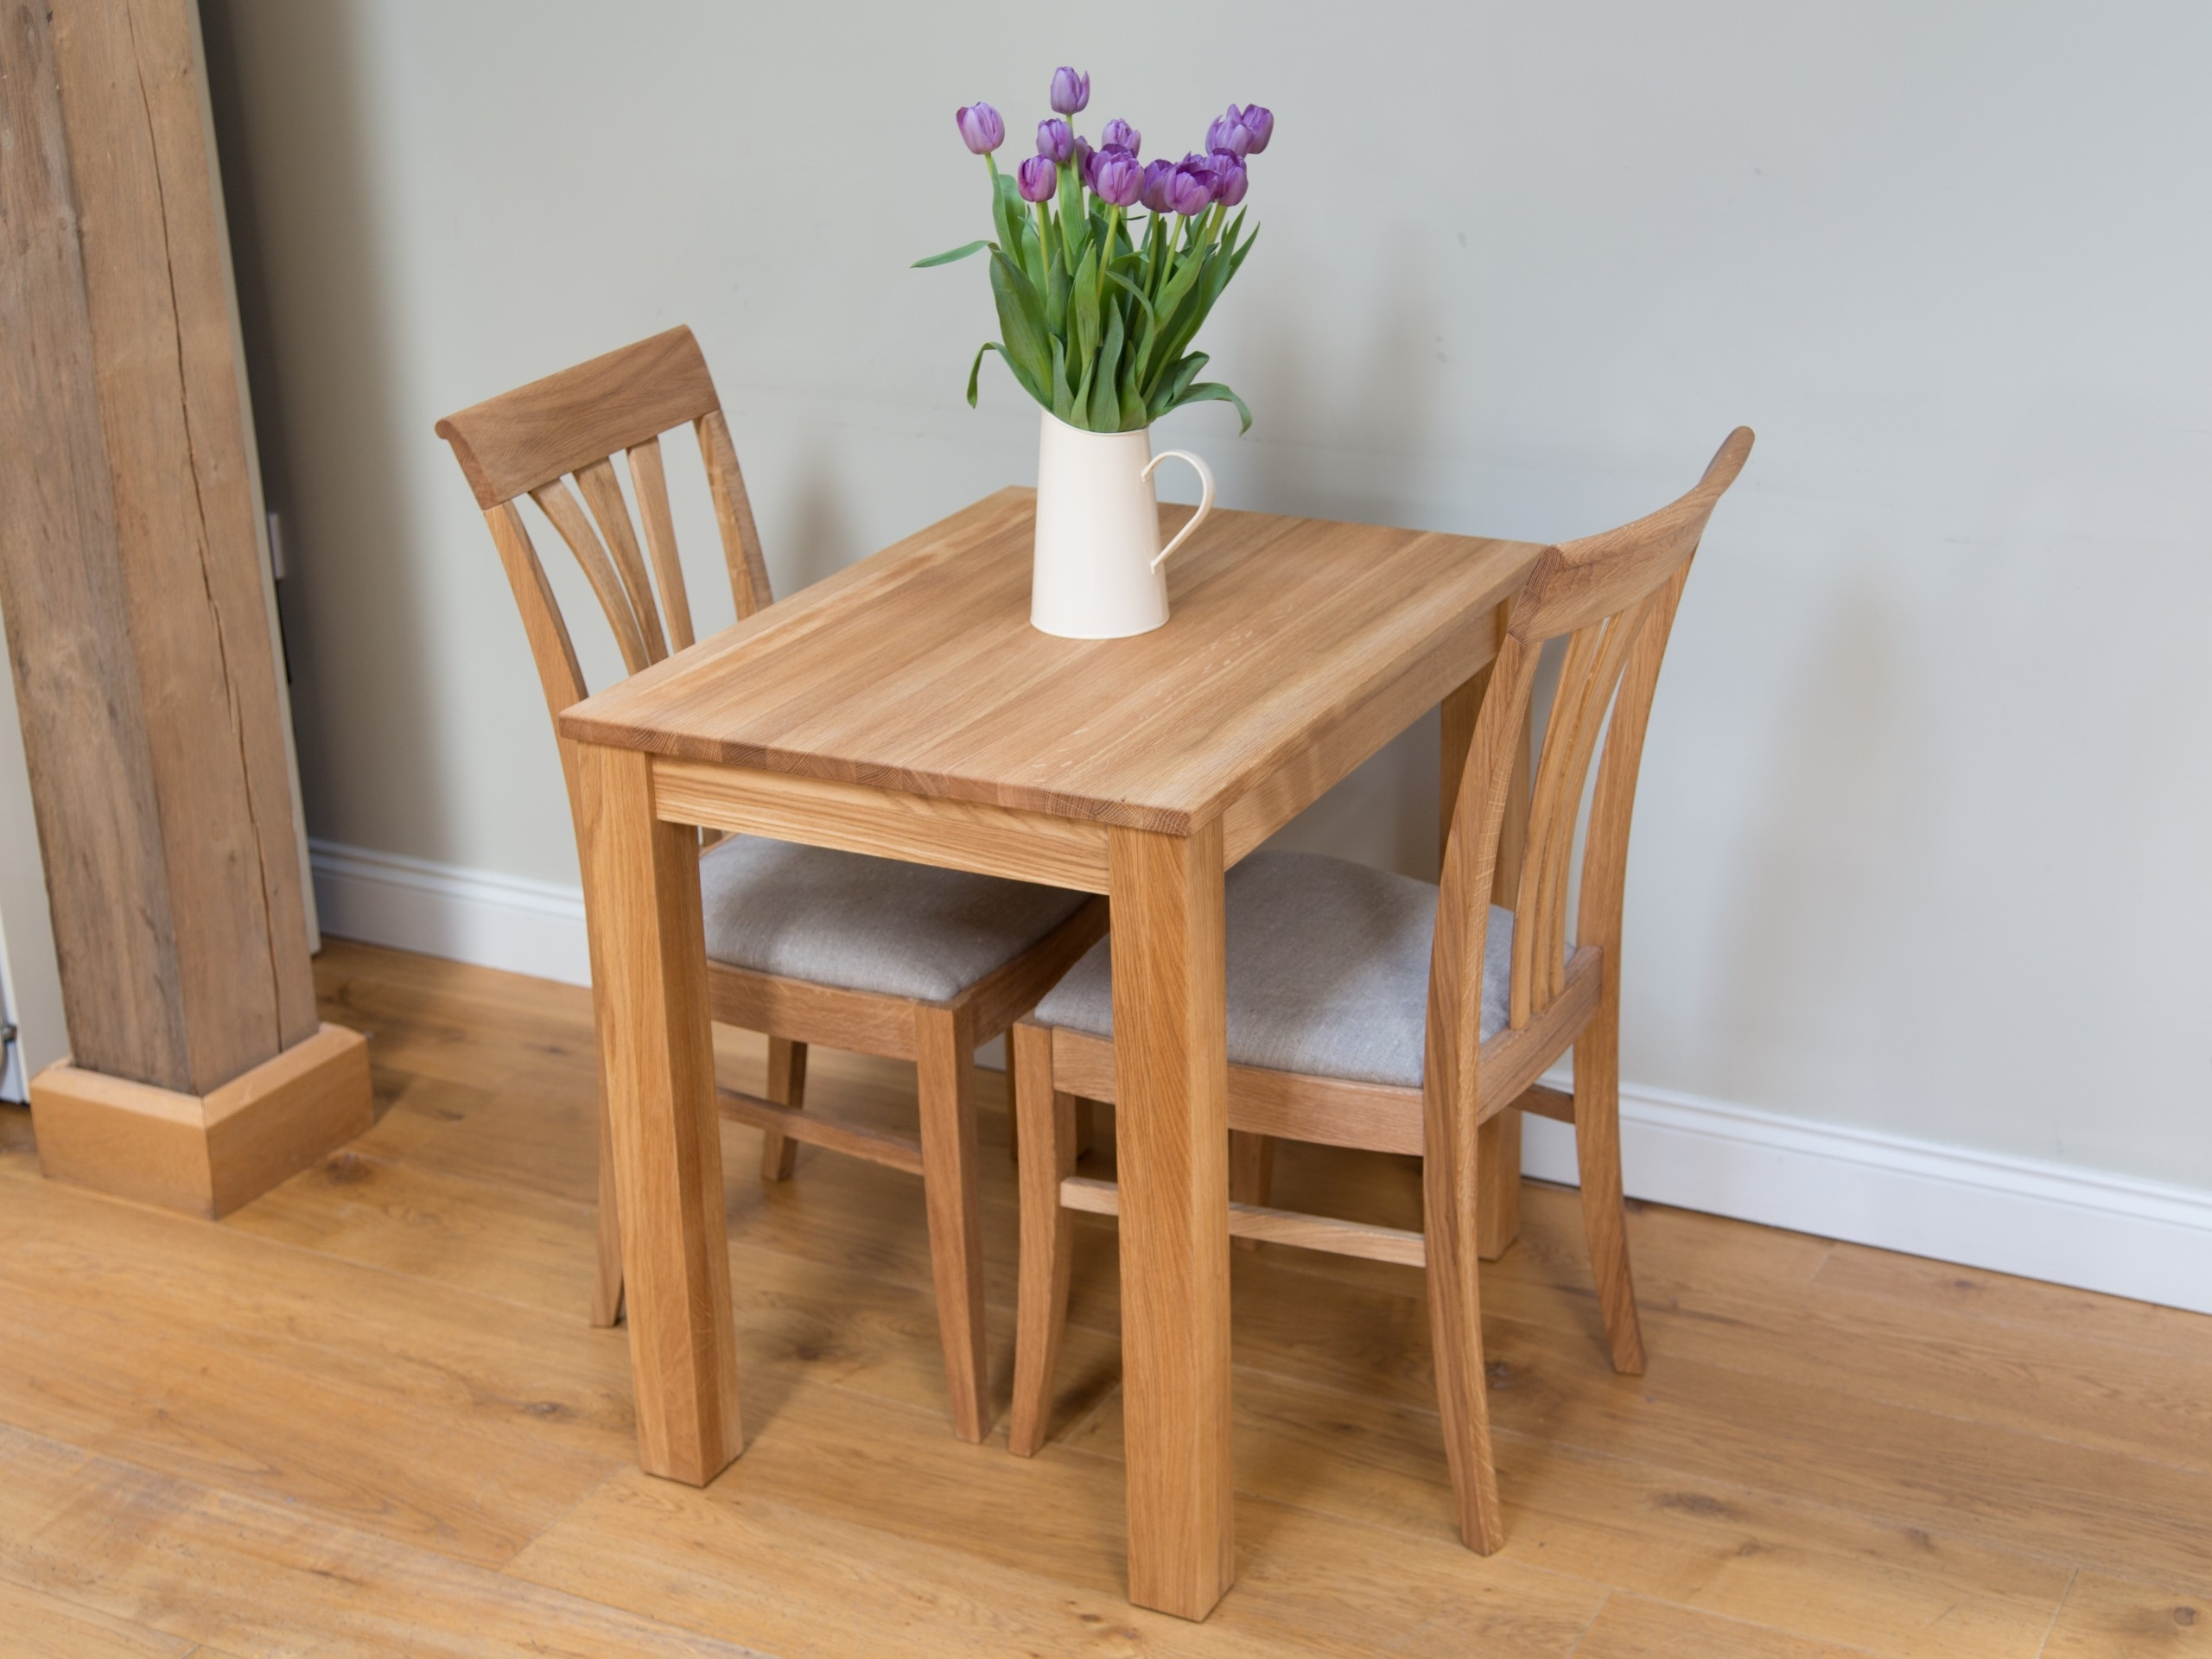 Most Popular Oak Kitchen Table Chair Dining Set From Top Furniture, At A Table Throughout Dining Tables For Two (View 10 of 25)